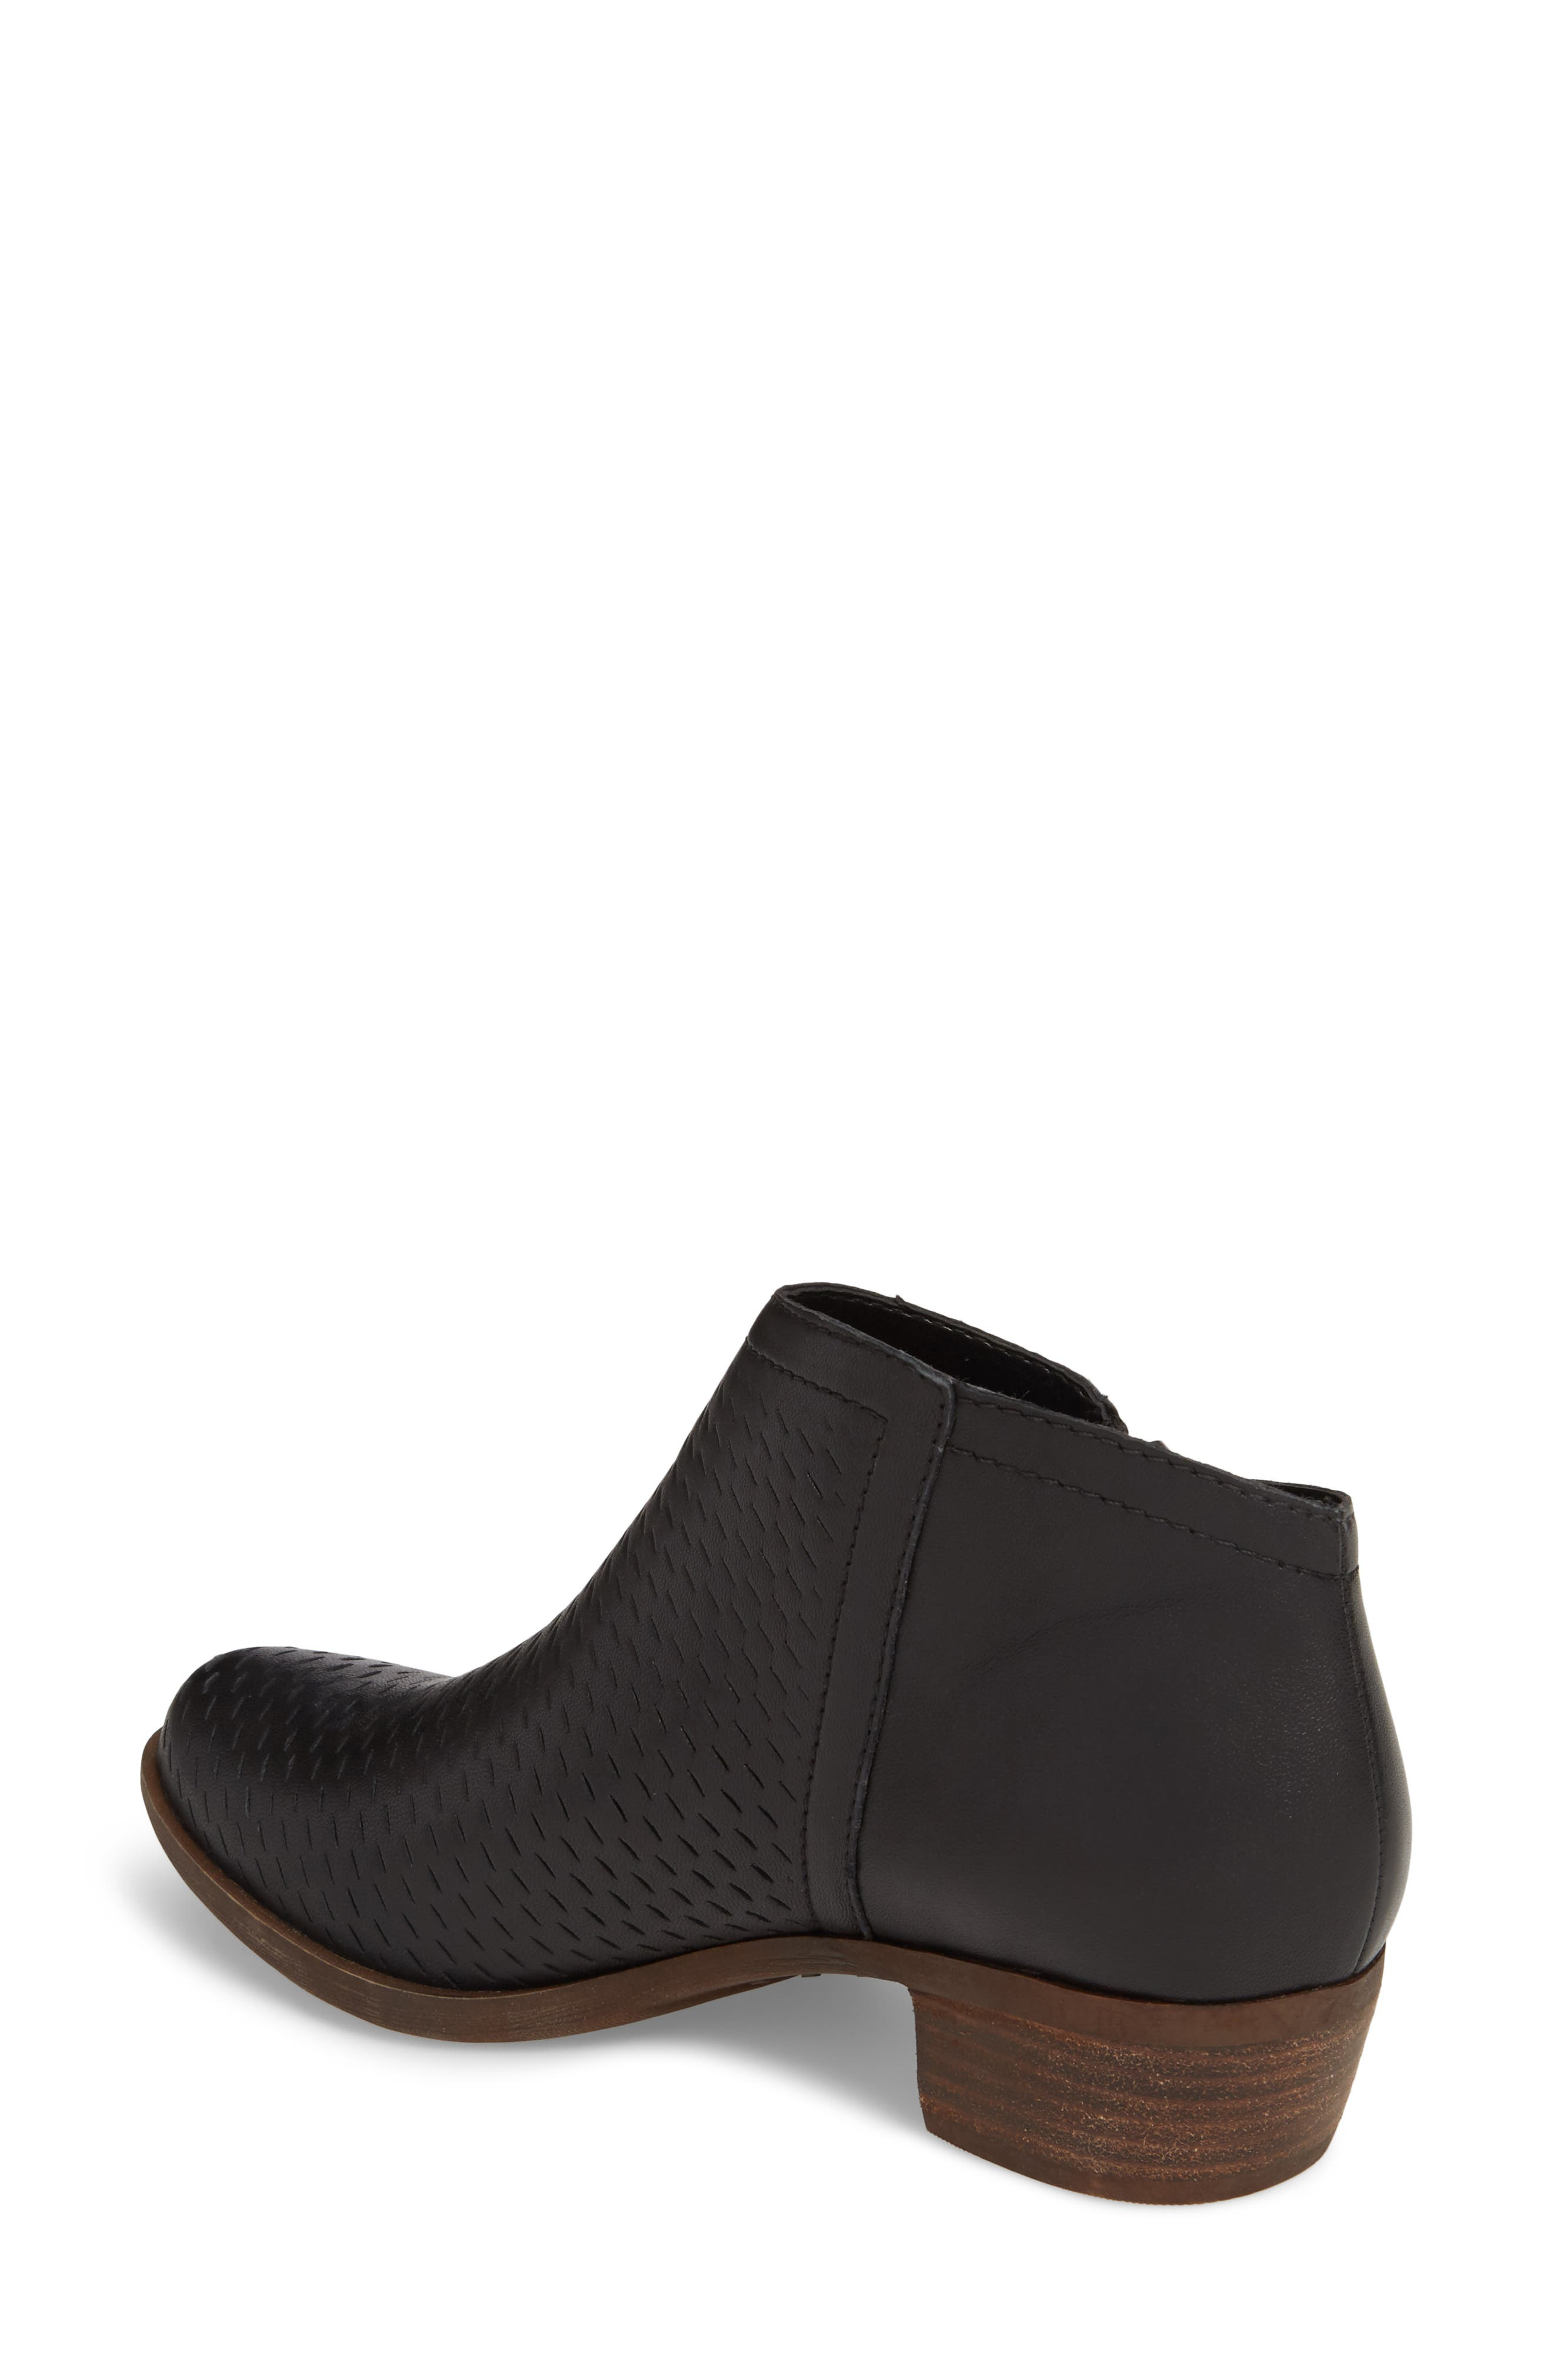 Brielley Perforated Bootie,                             Alternate thumbnail 2, color,                             002